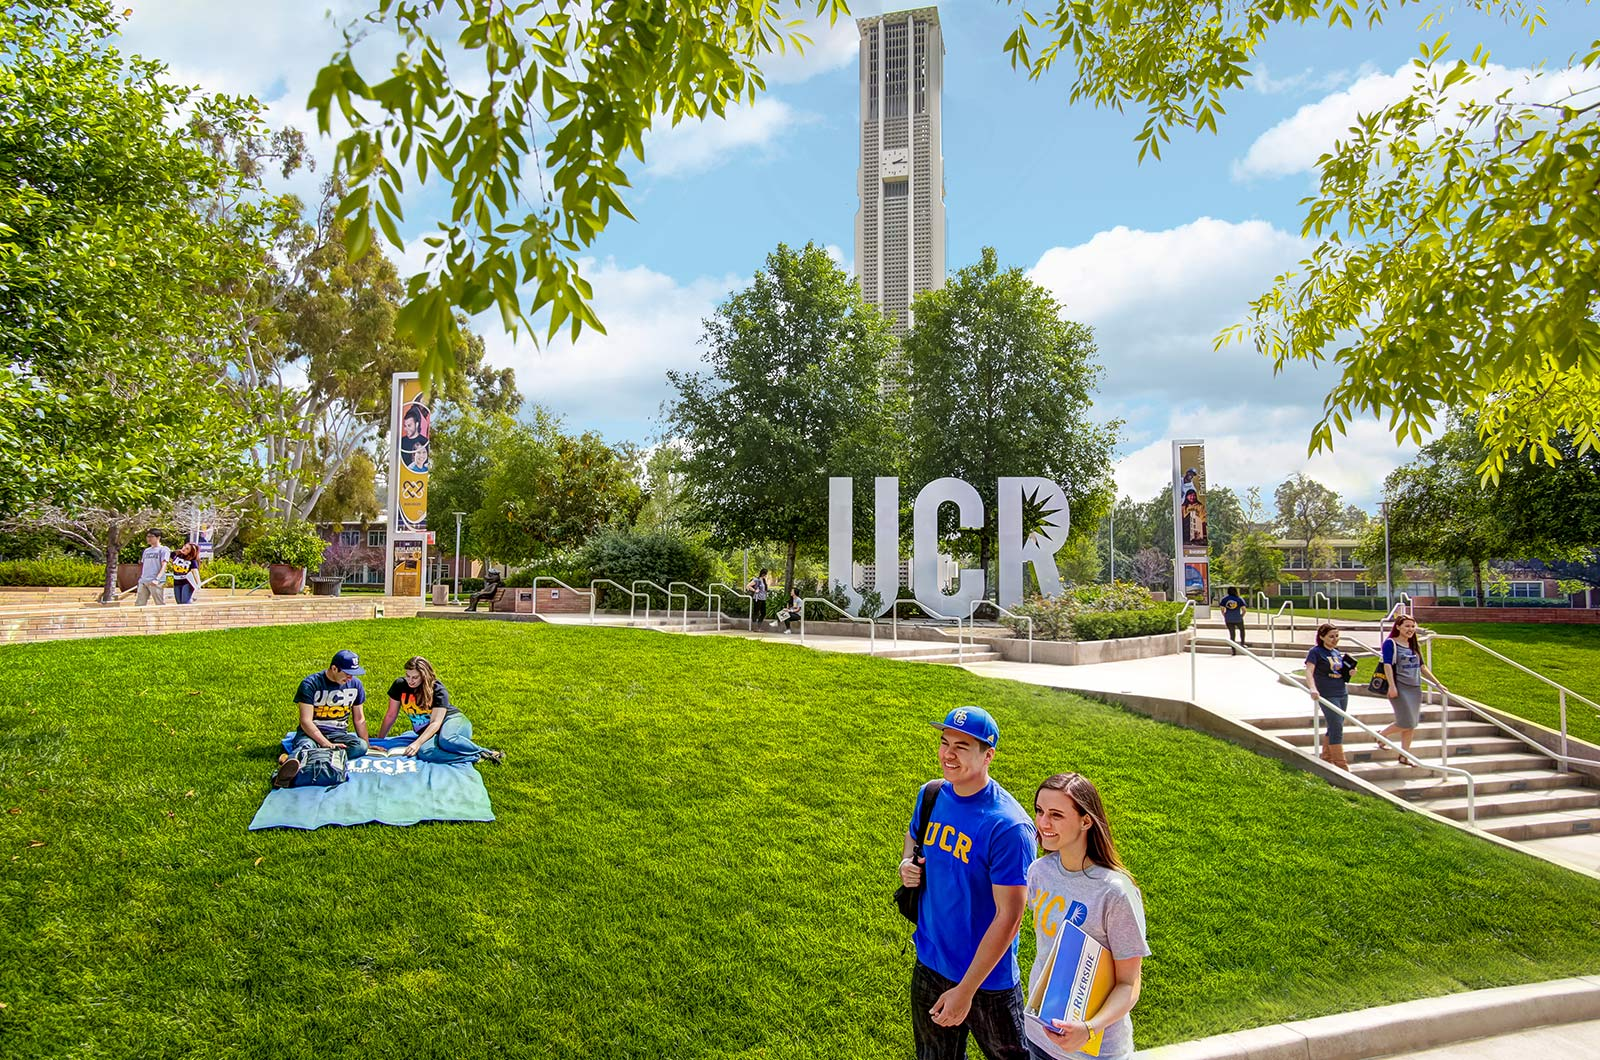 UCR-Sign-College-Virtual-Tour-Provider-Viritual-Tours-For-College-College-Virtual-Tour-Company